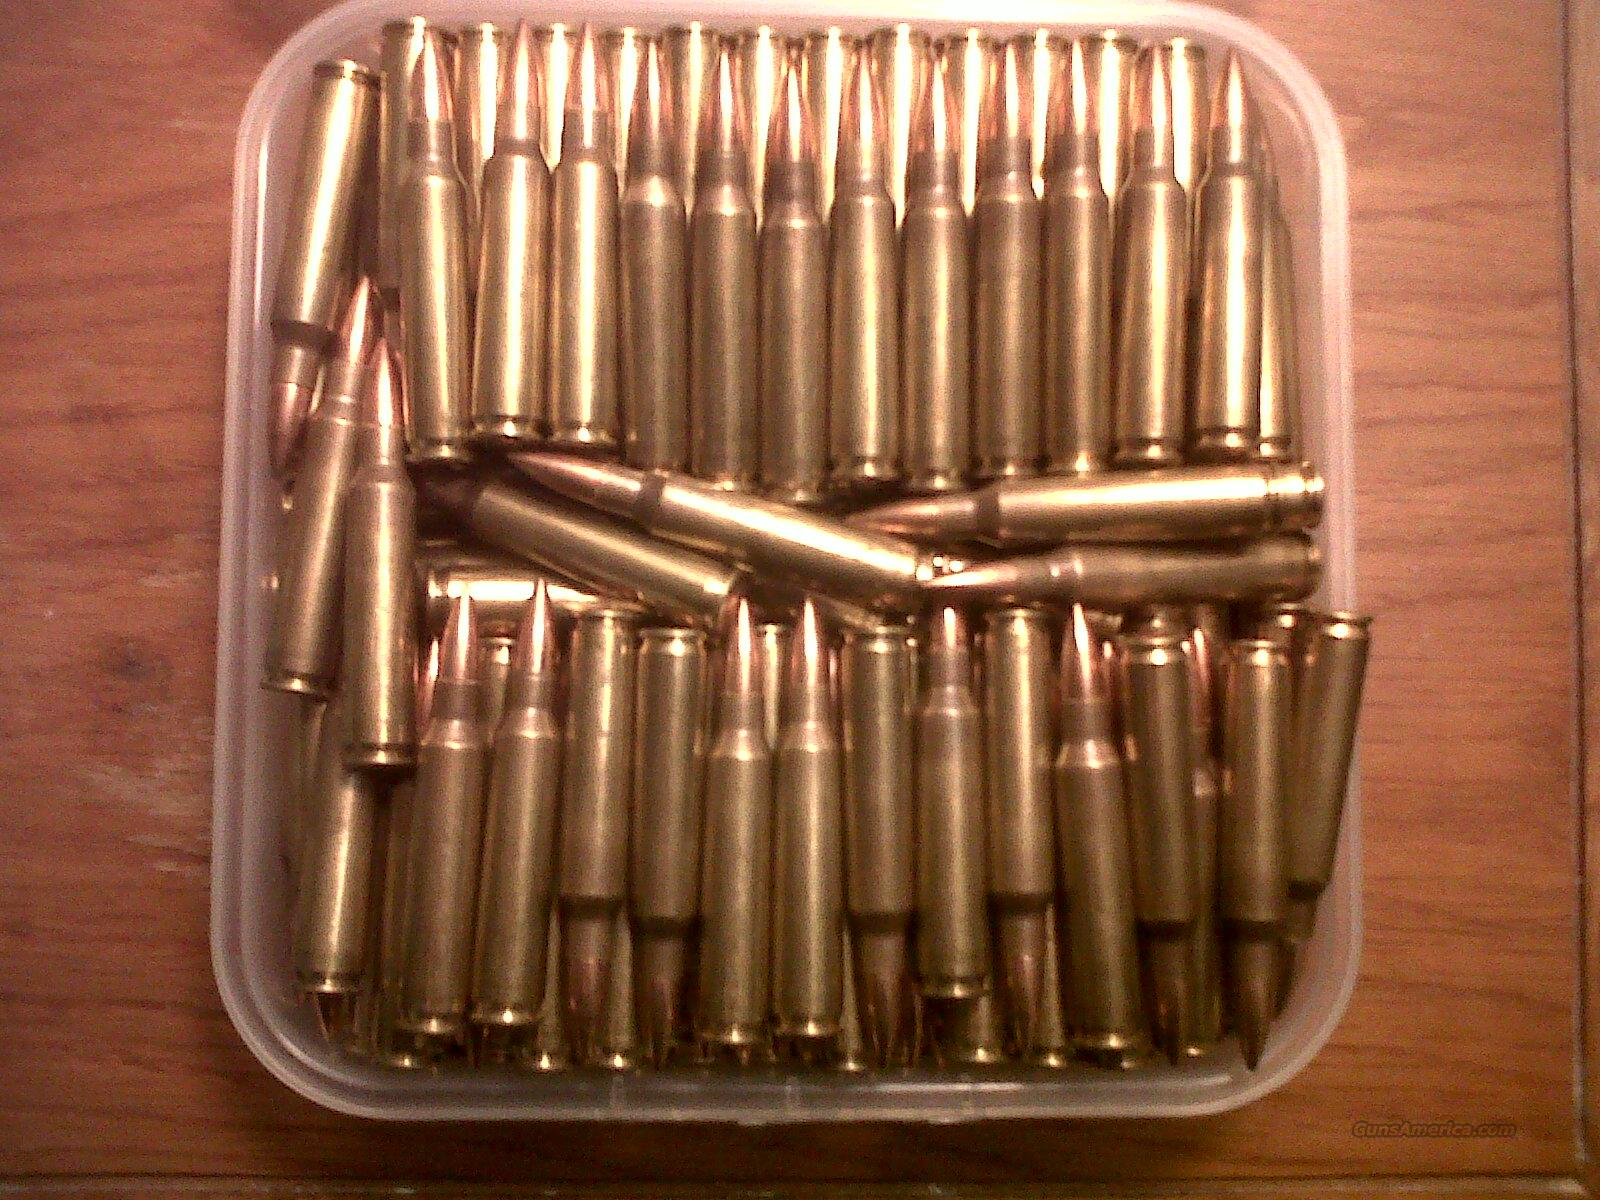 223 ar 15 ammo .223 these are reloads came with a trade in.. 200 rounds per container for 1 money  Non-Guns > Ammunition